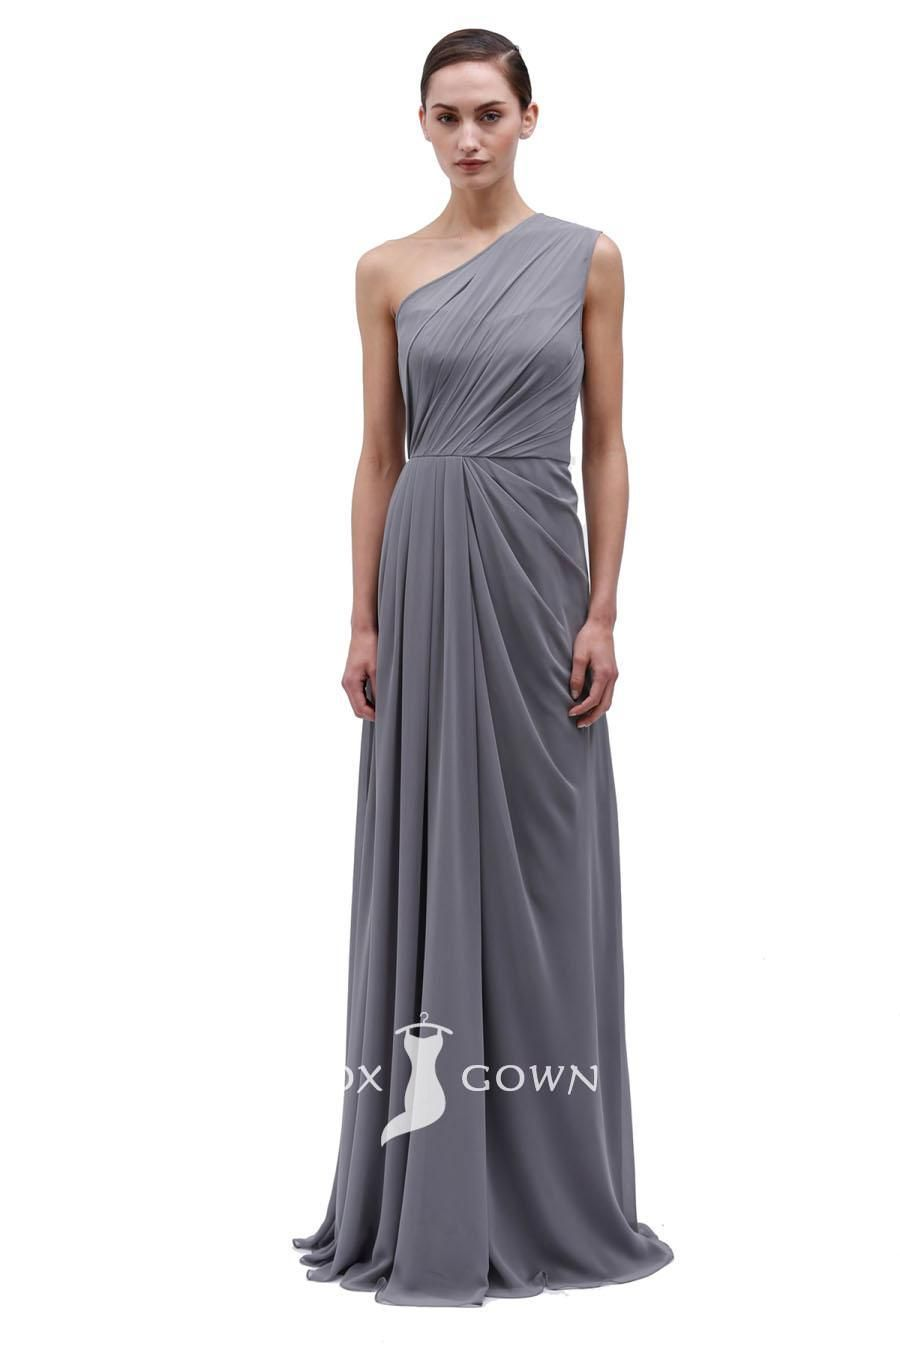 Chiffon grey sleeveless one shoulder floor length bridesmaid dress chiffon grey sleeveless one shoulder floor length bridesmaid dress style idea ombrellifo Gallery